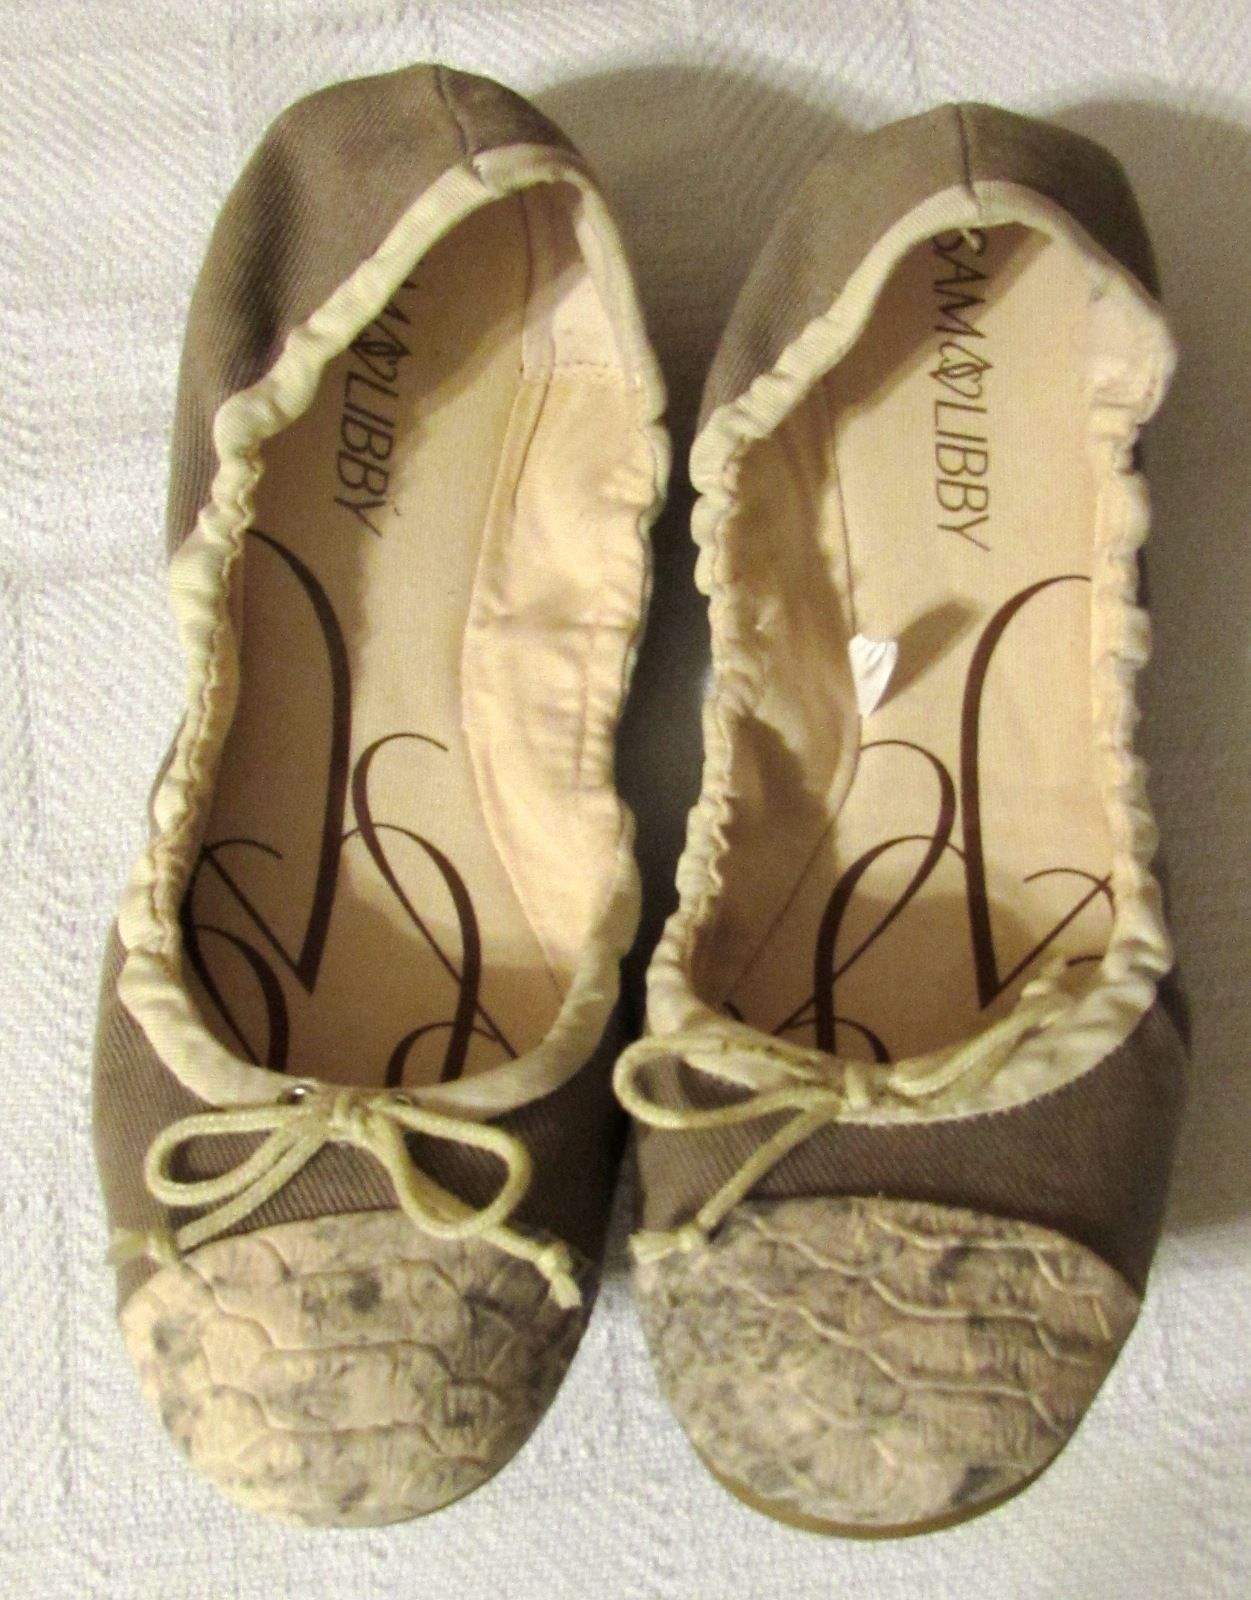 SAM & LIBBY Taupe Ballet Flats Python Snakeskin Faux Leather Toe Size: 7M